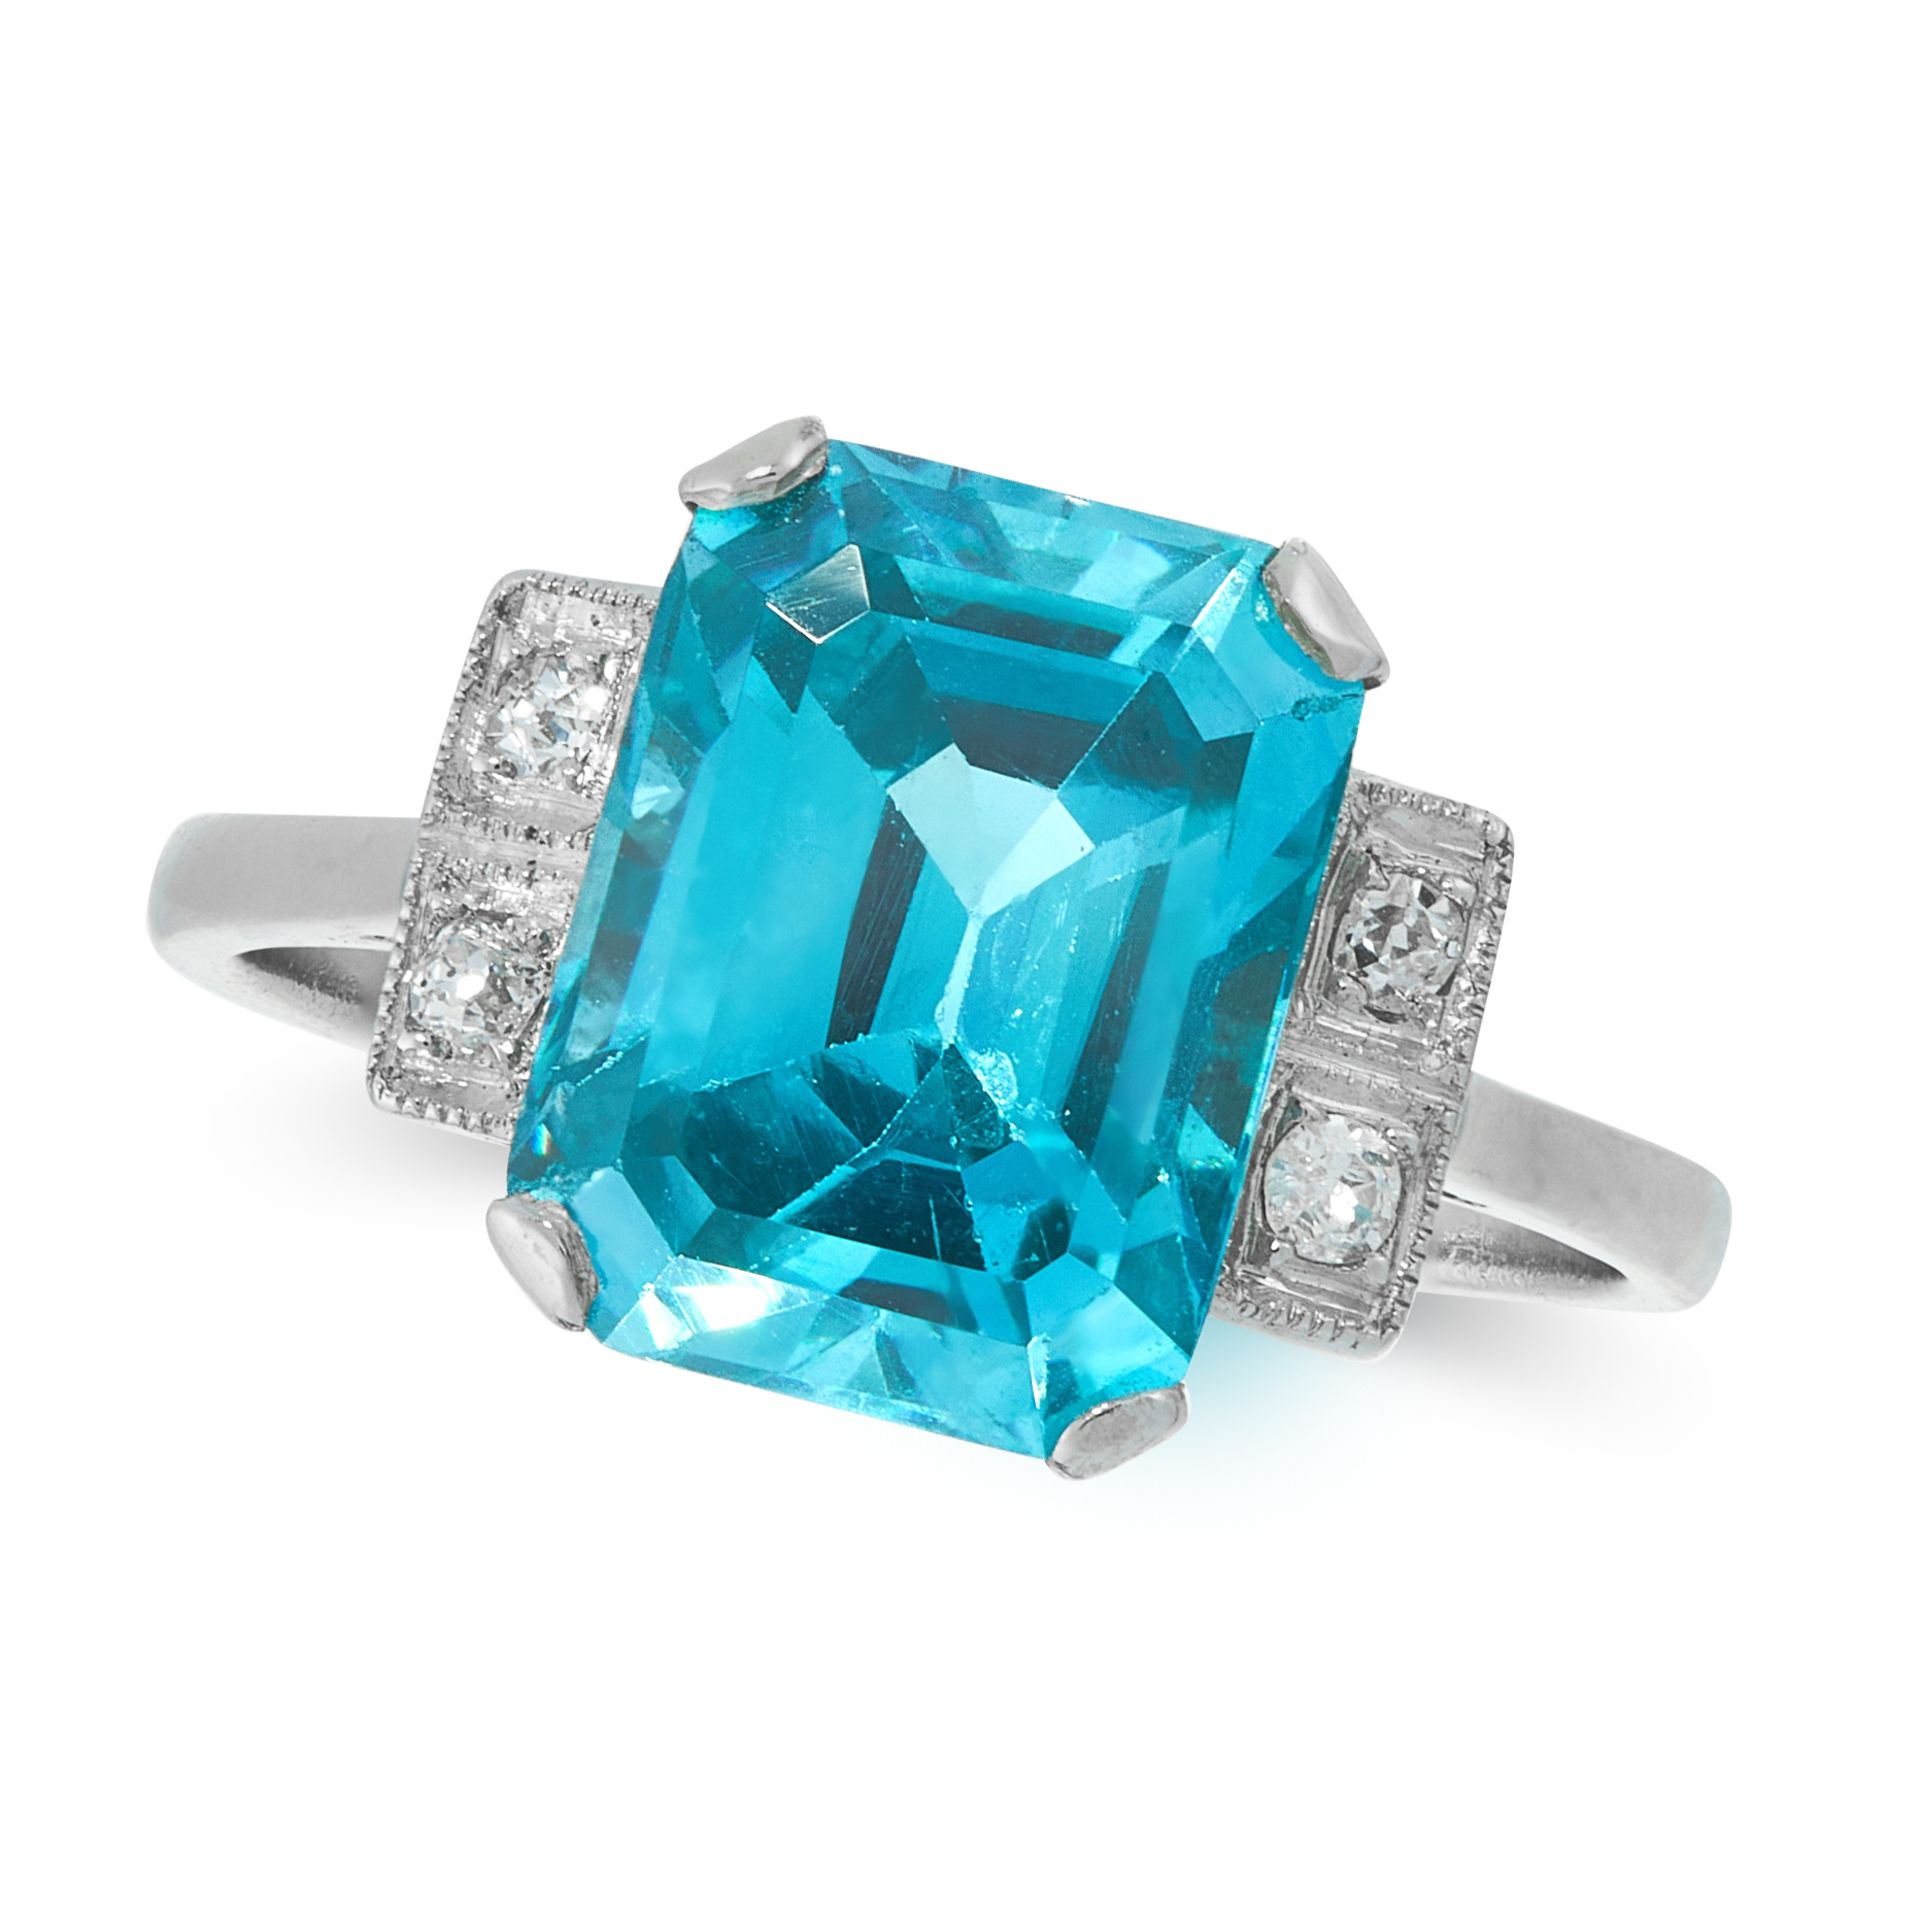 A BLUE ZIRCON AND DIAMOND DRESS RING, EARLY 20TH CENTURY in platinum, set with an emerald cut blue